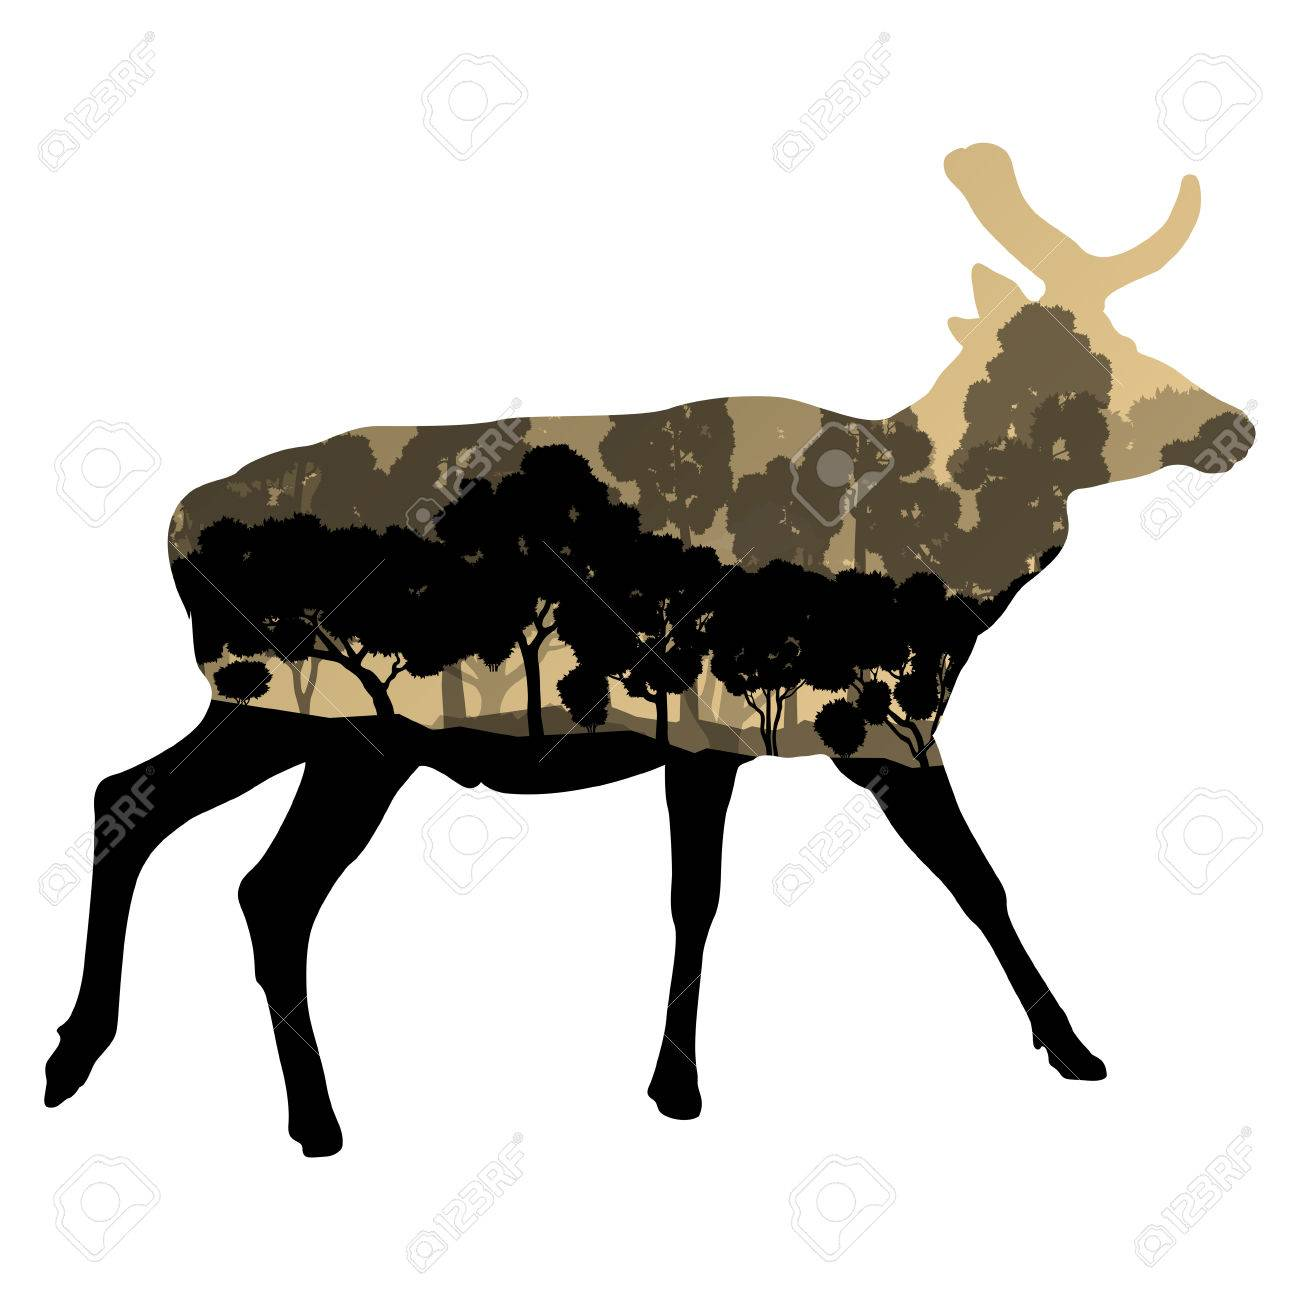 1300x1300 Deer Wild Animal Silhouette In Nature Forest Landscape Abstract